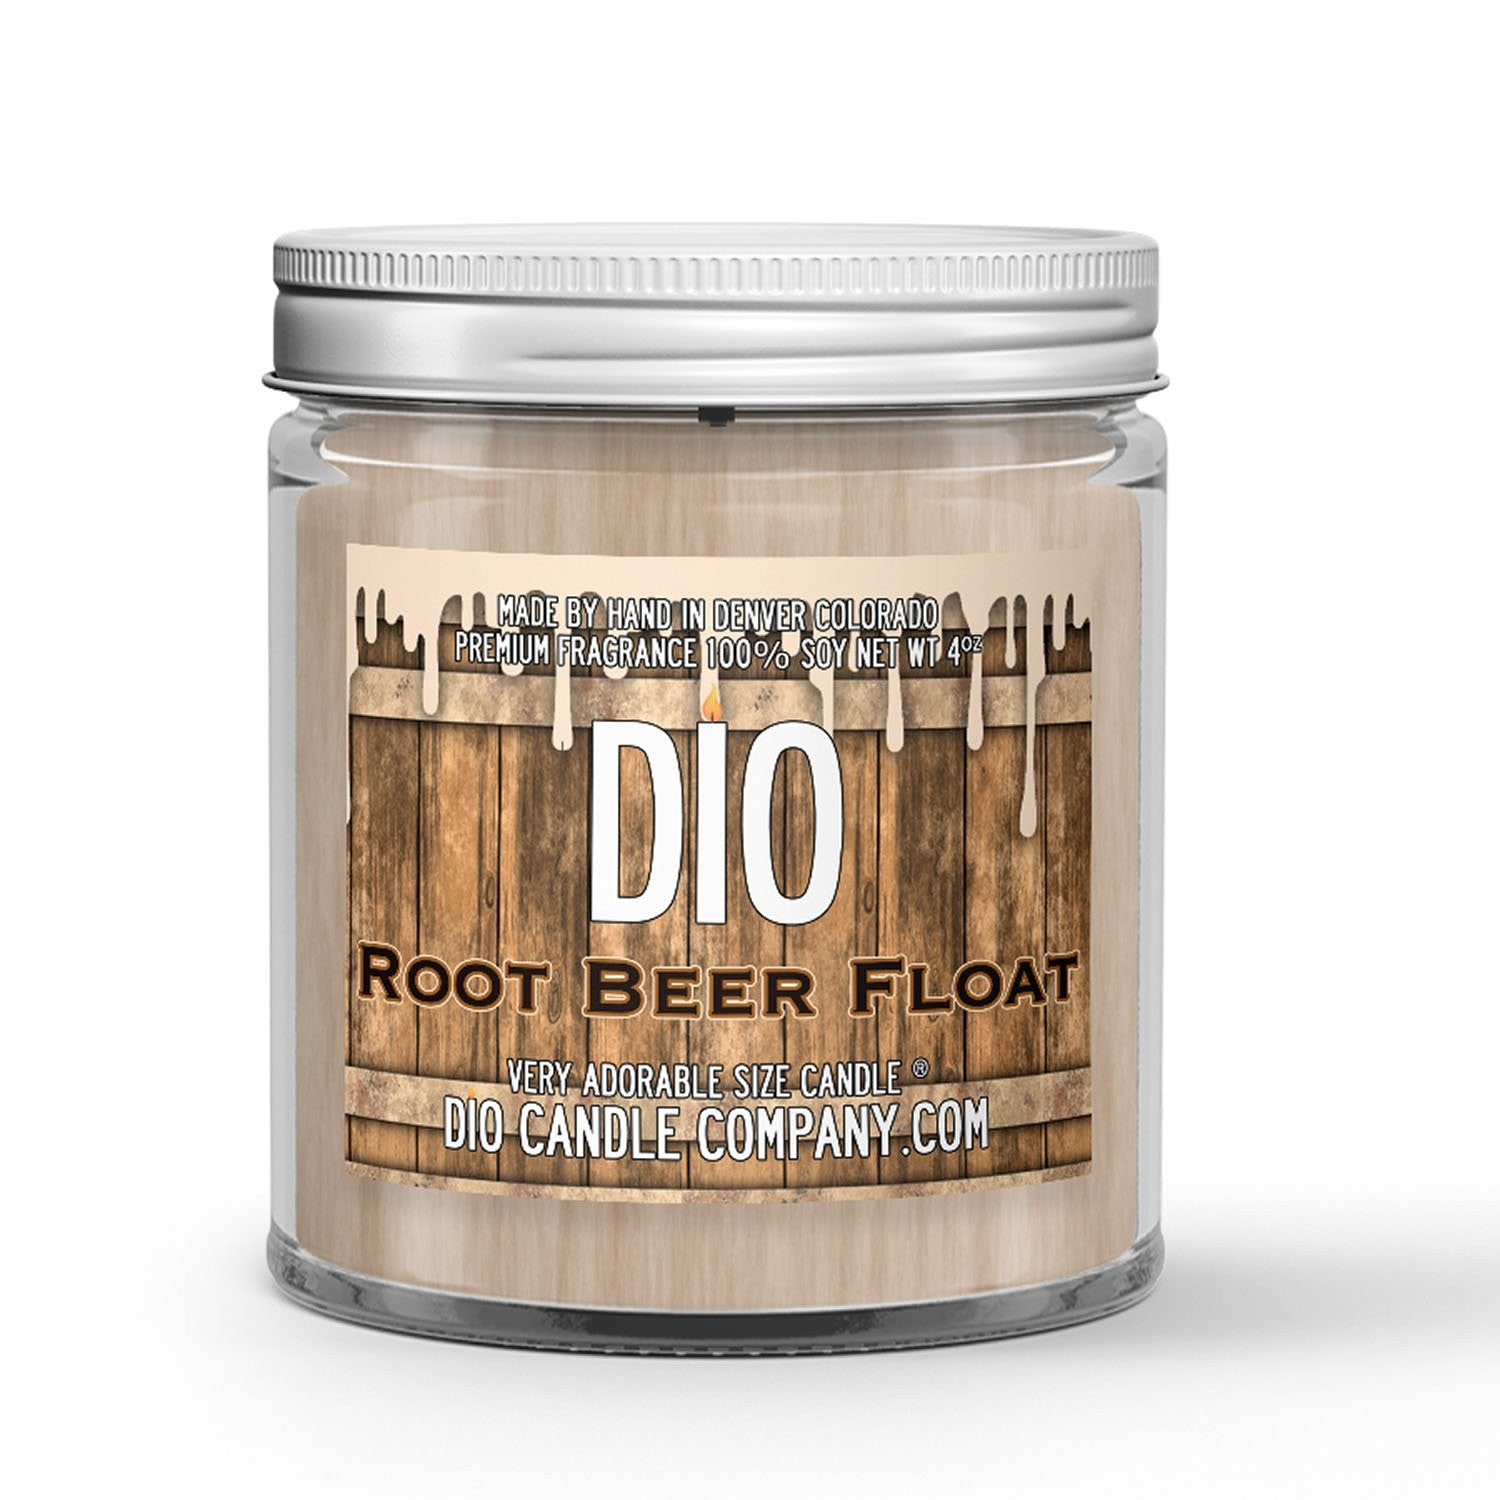 Root Beer Float Candle Root Beer - Ice Cream Scented - Dio Candle Company